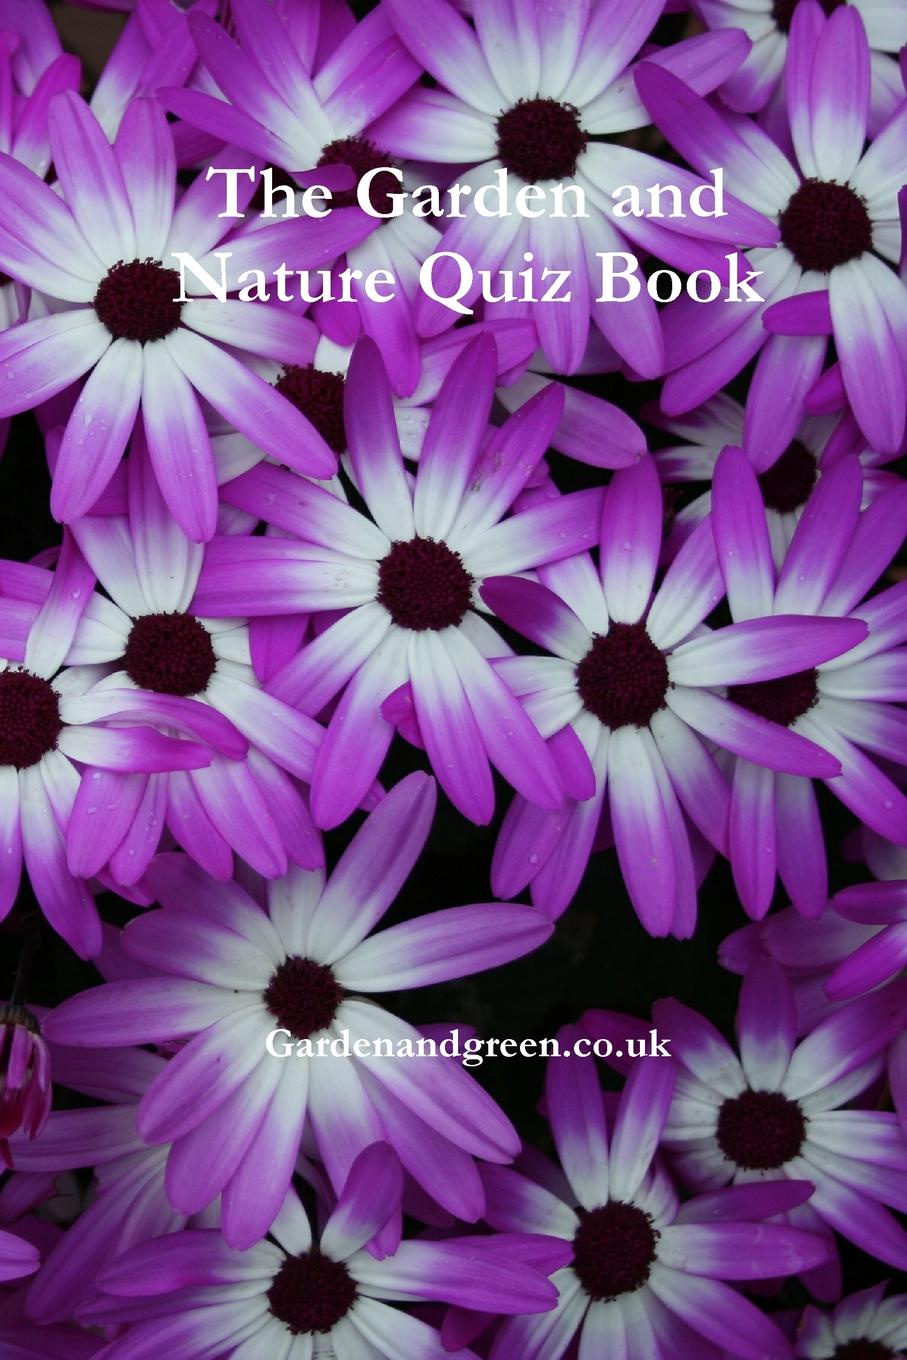 Gardenandgreen.co.uk The Garden and Nature Quiz Book lovebook the quiz book for couples